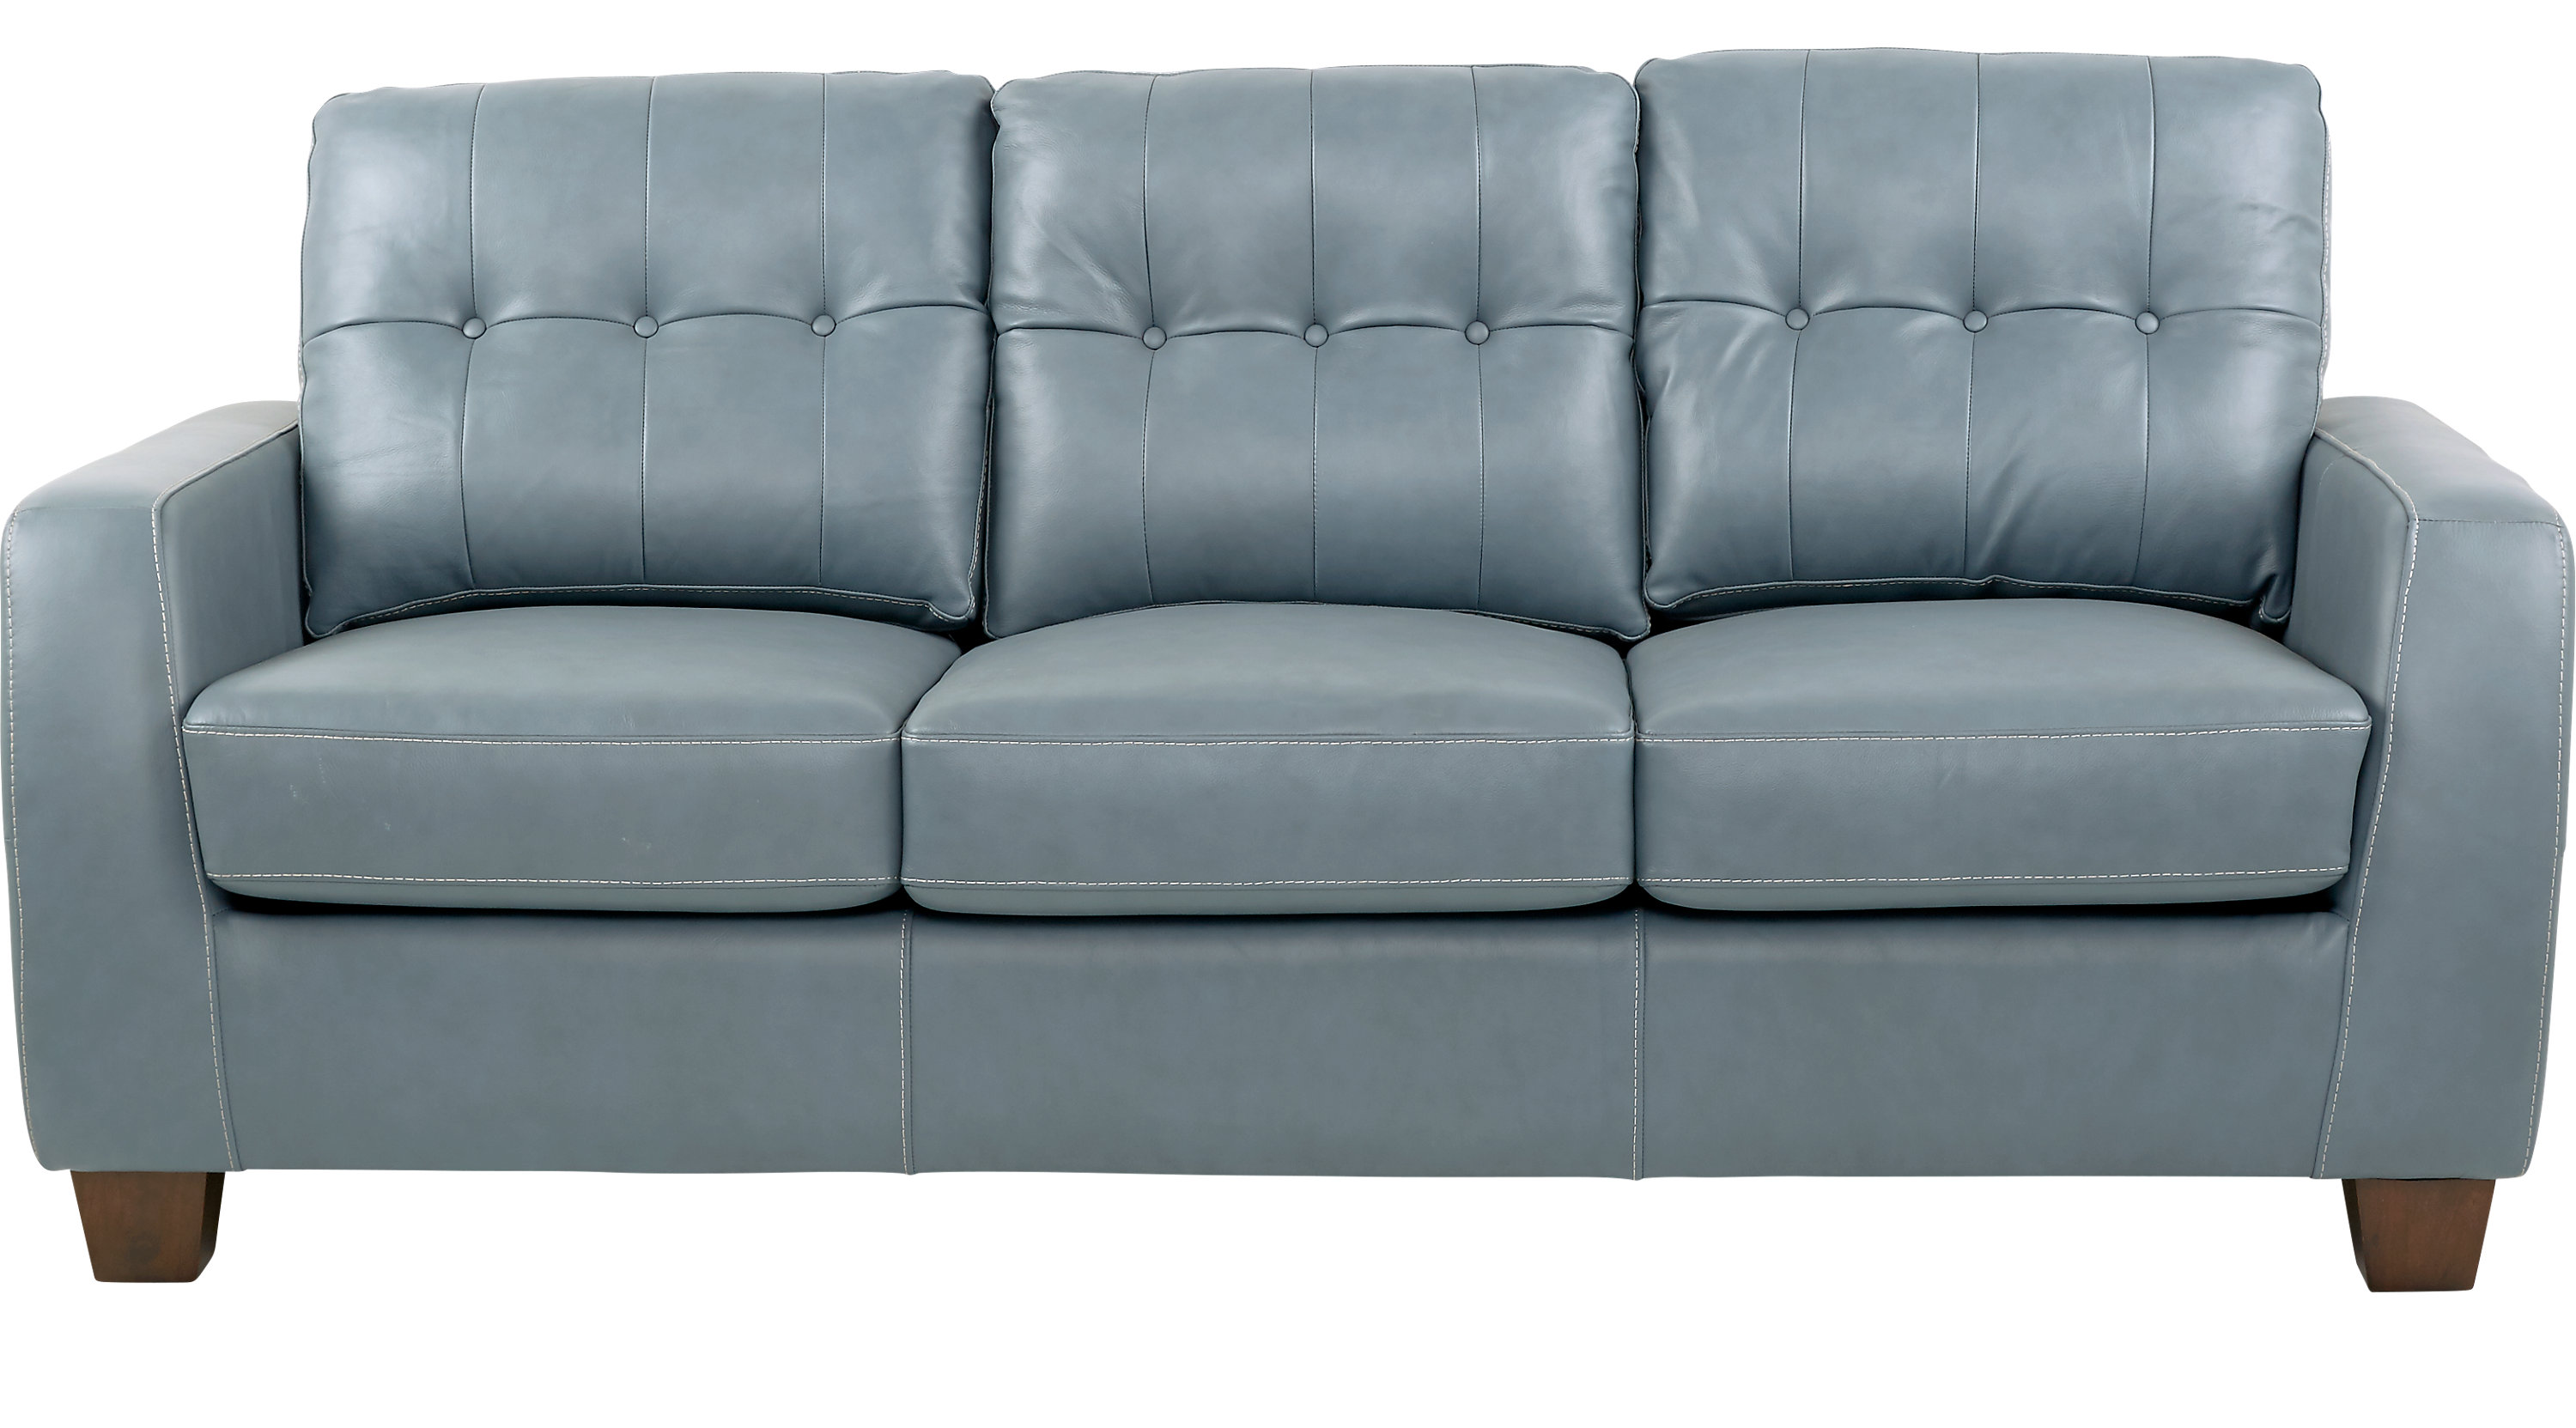 Santoro Ocean Leather Sofa